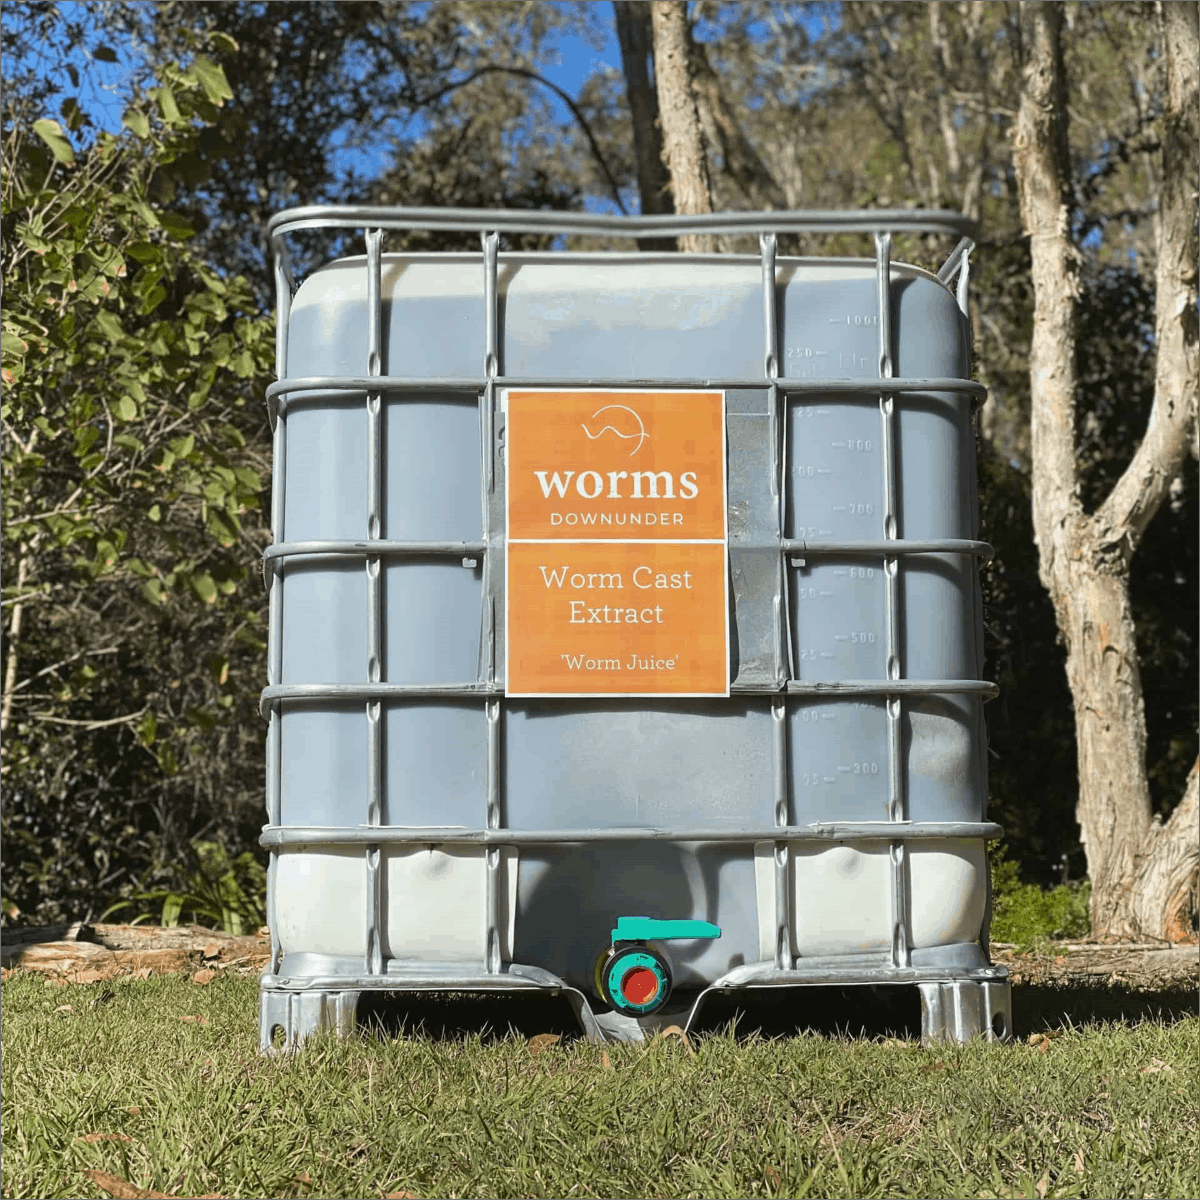 Worms Downunder Australian Worm Farms Habitats And Vermicomposting Experts. Commercial Worm Cast Extract